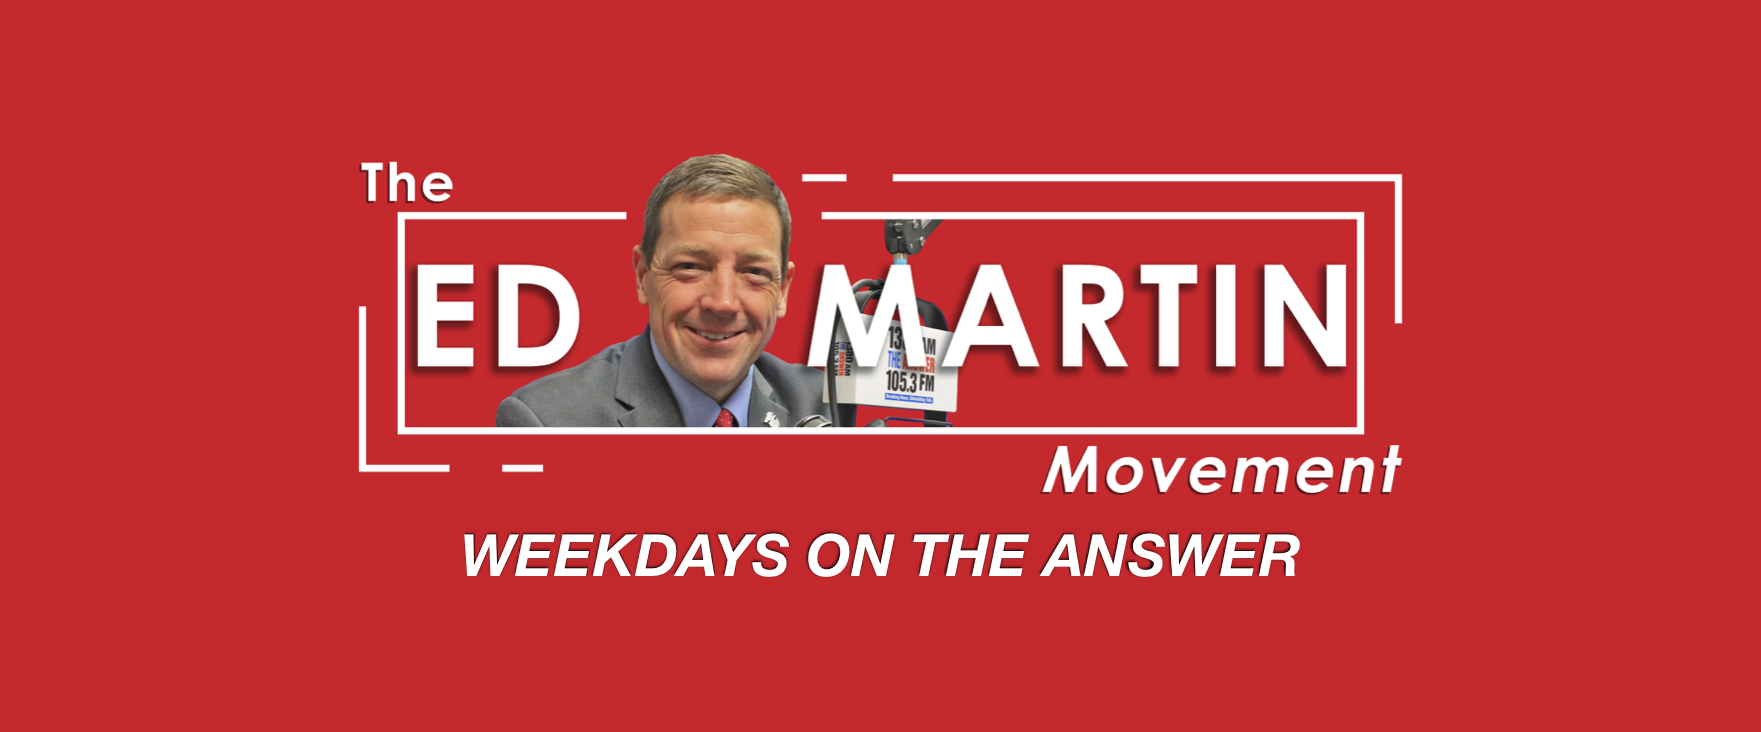 The Ed Martin Movement